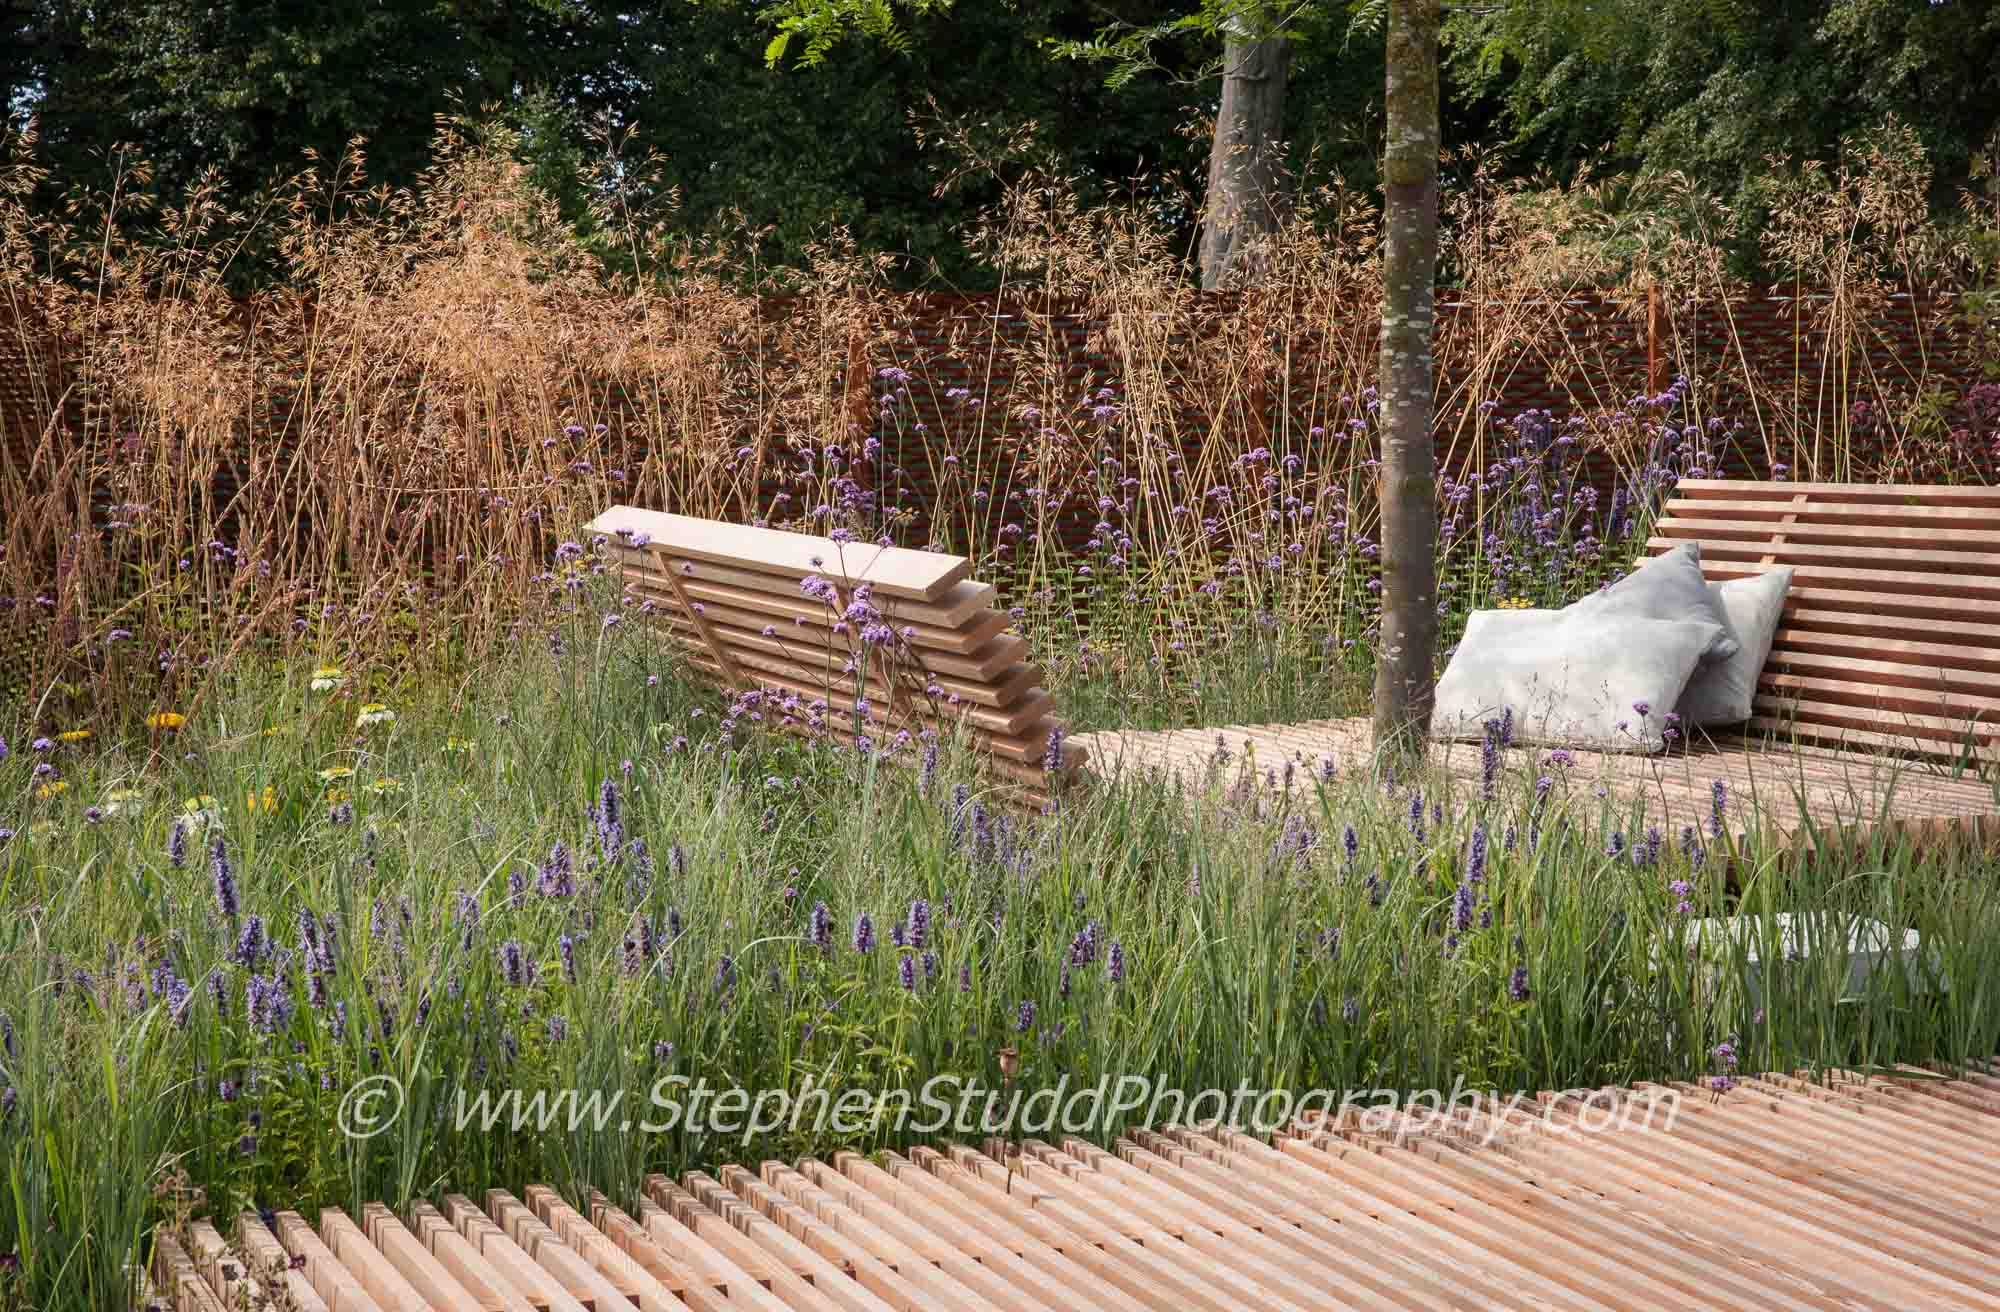 Stephen studd garden photographer 39 s association for Garden design knutsford